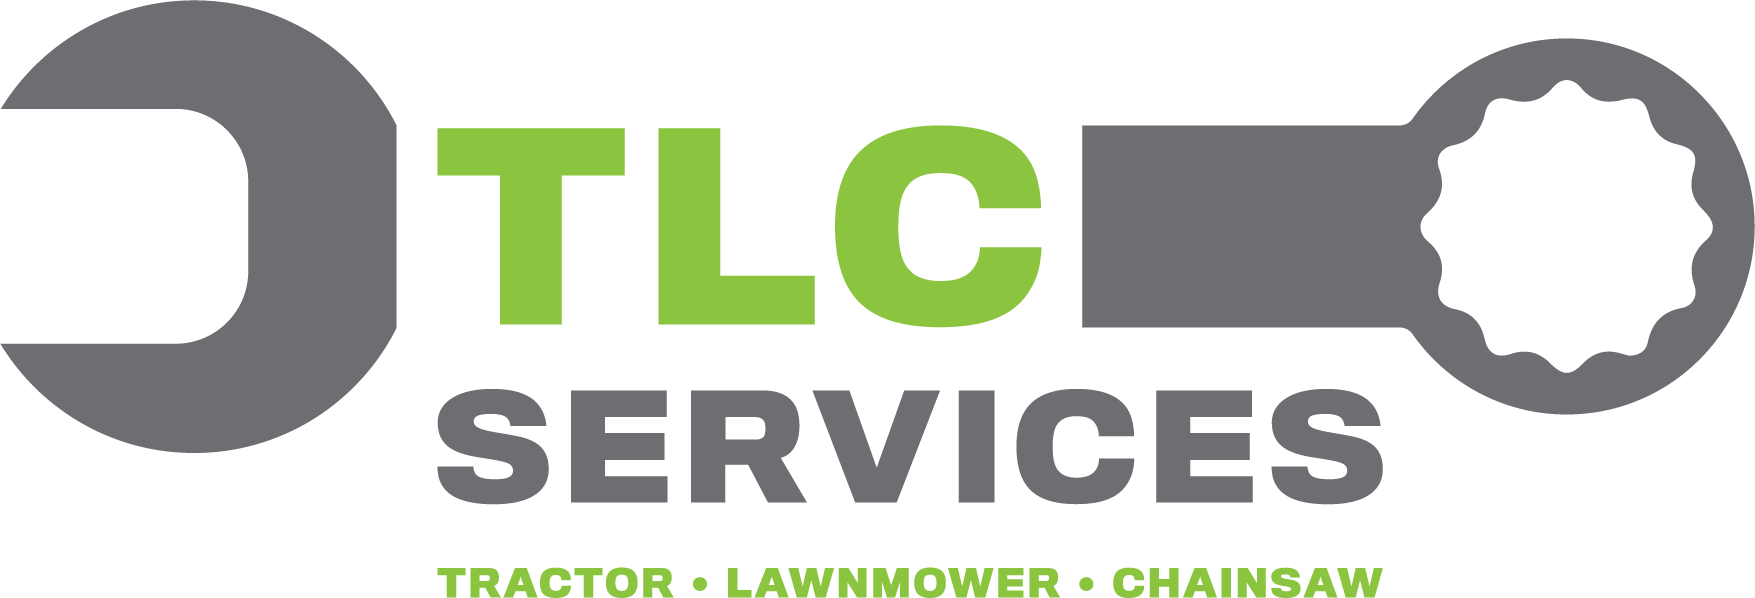 TLC Tractor Lawnmower & Chainsaw Services